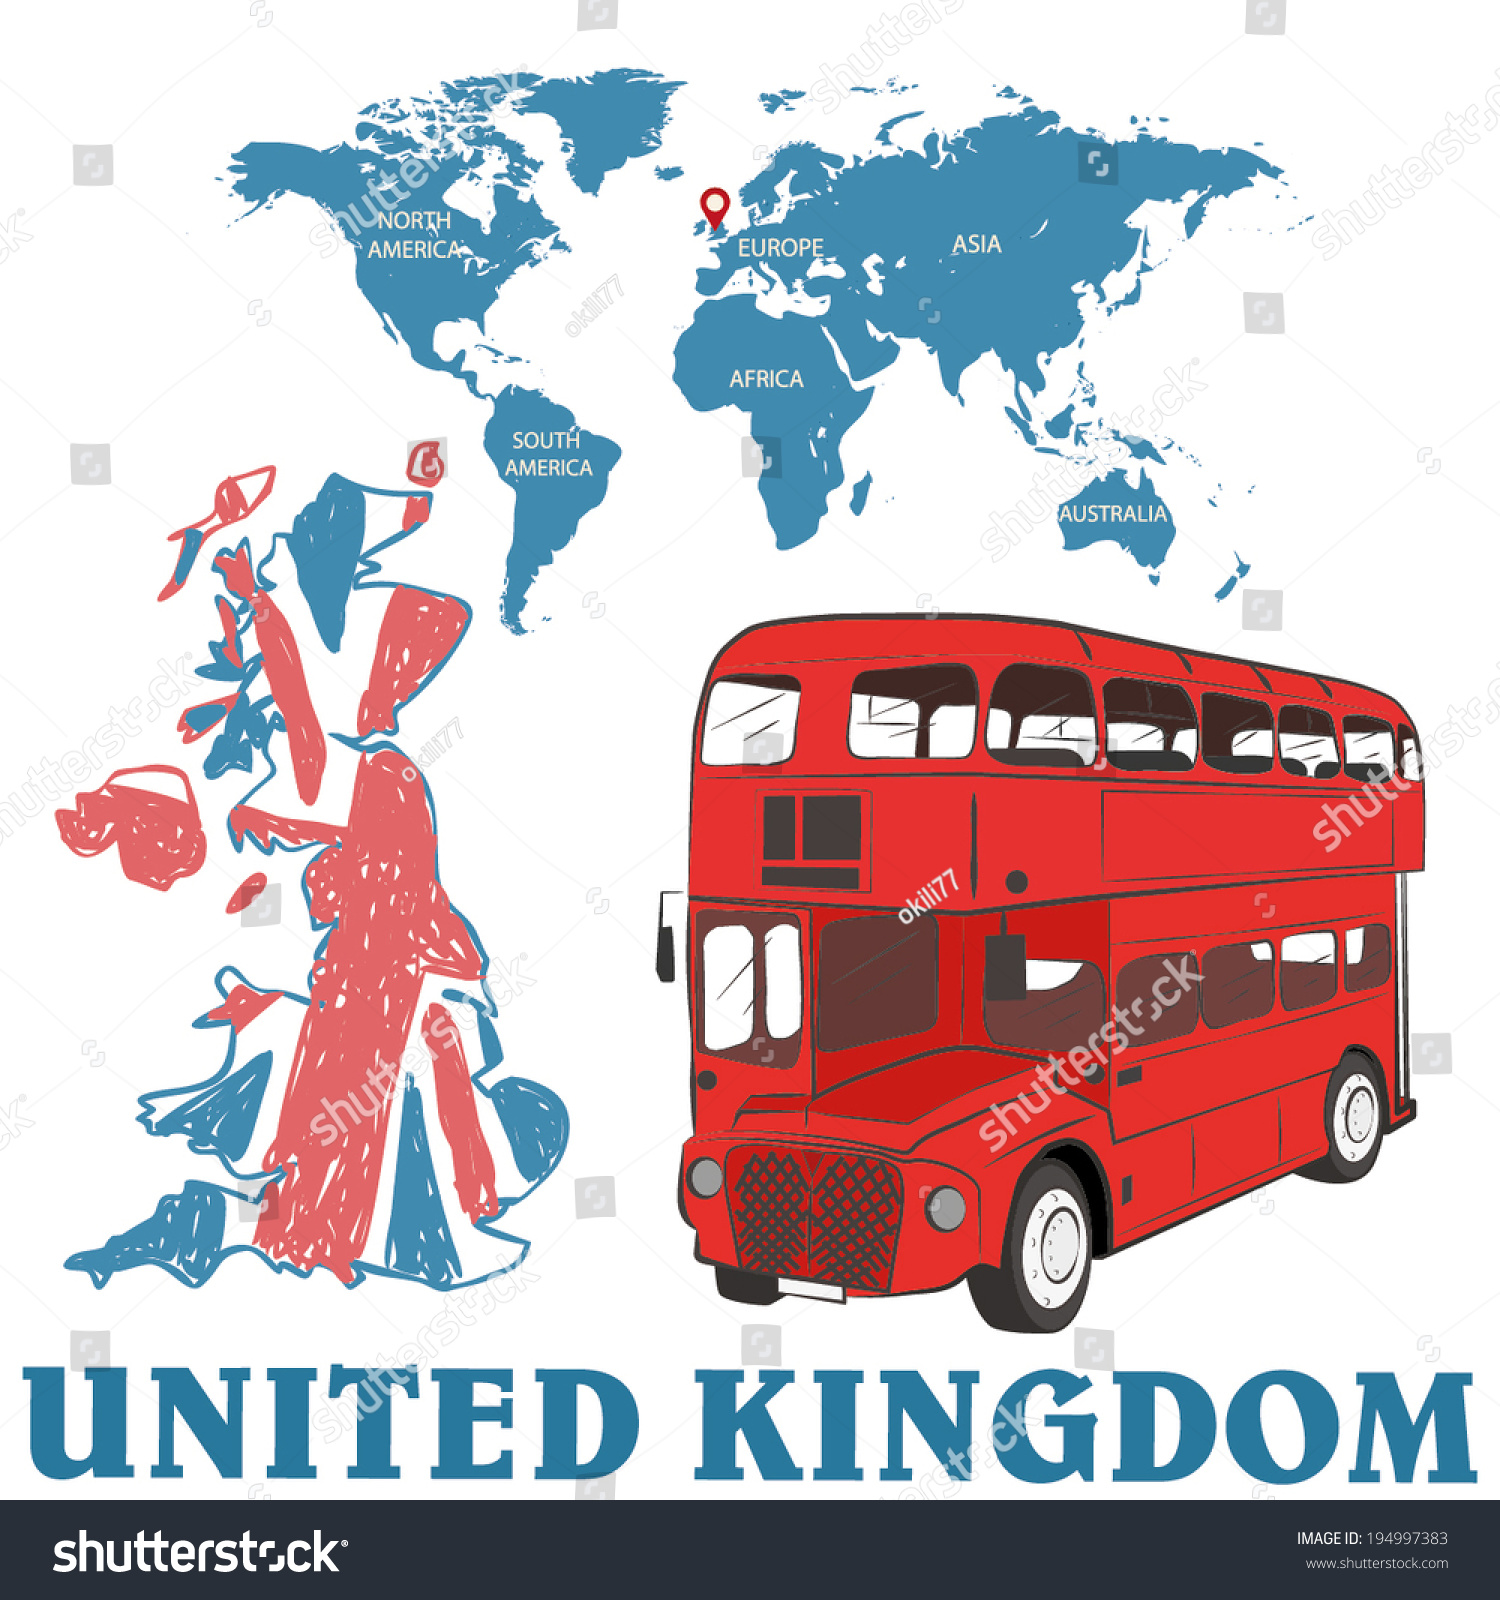 United Kingdom London Bus Map World Stock Vector - Map of north america and united kingdom